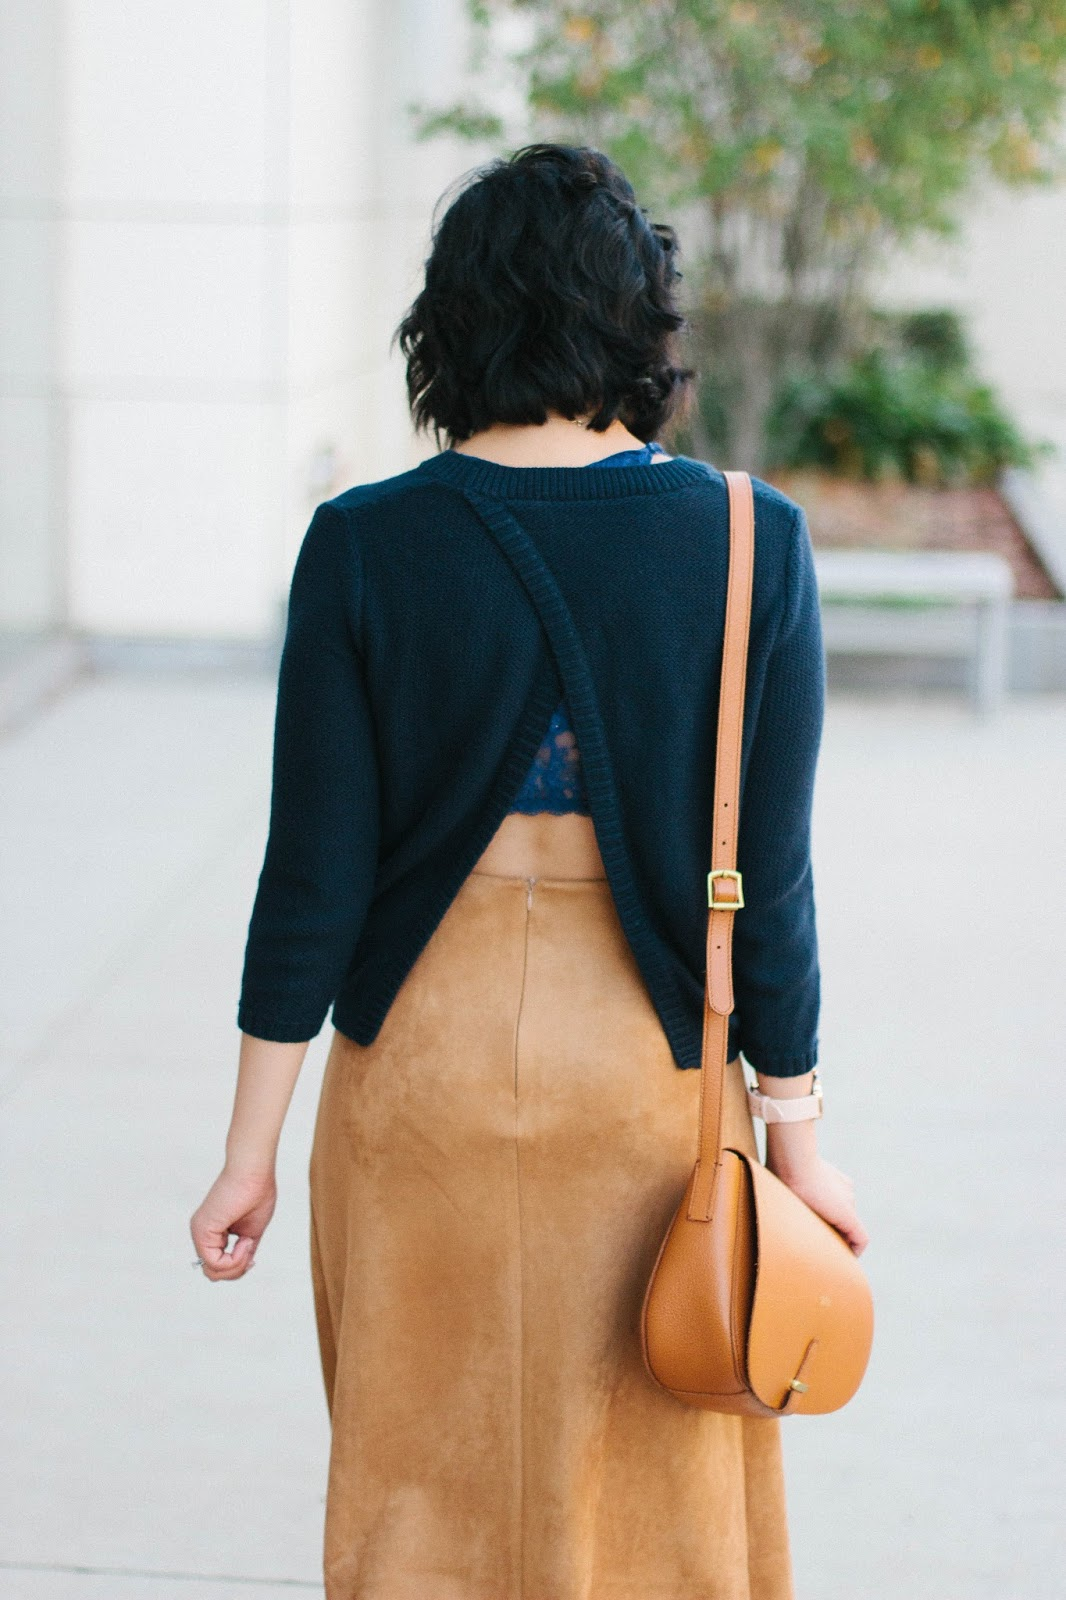 6 Chic Open Back Sweater and Classic Midi Skirt For Fall